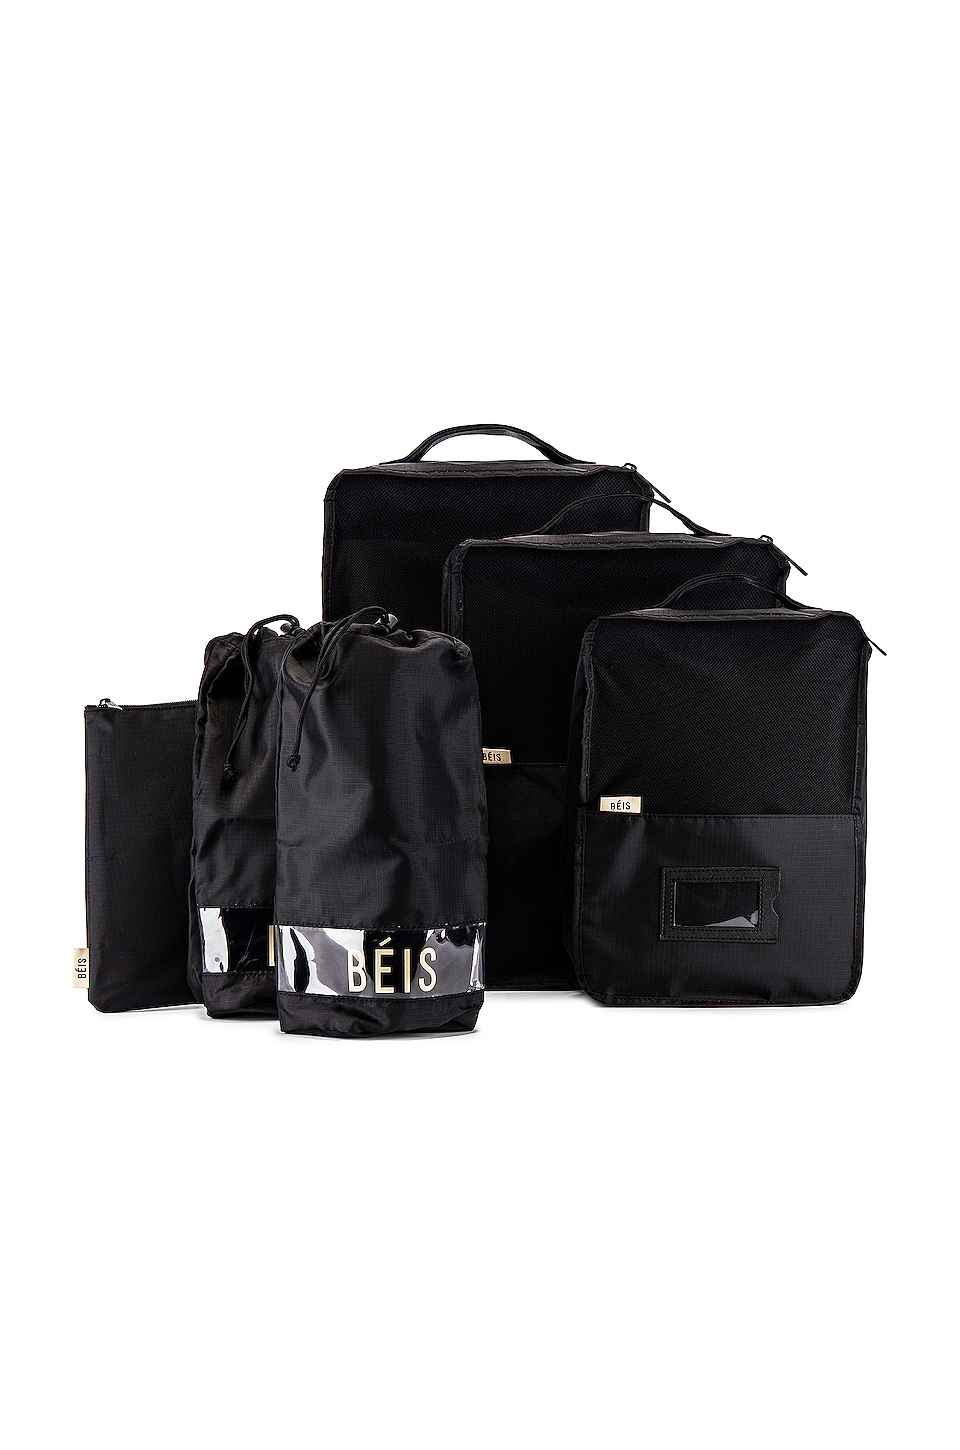 BEIS Packing Cube Set in Black